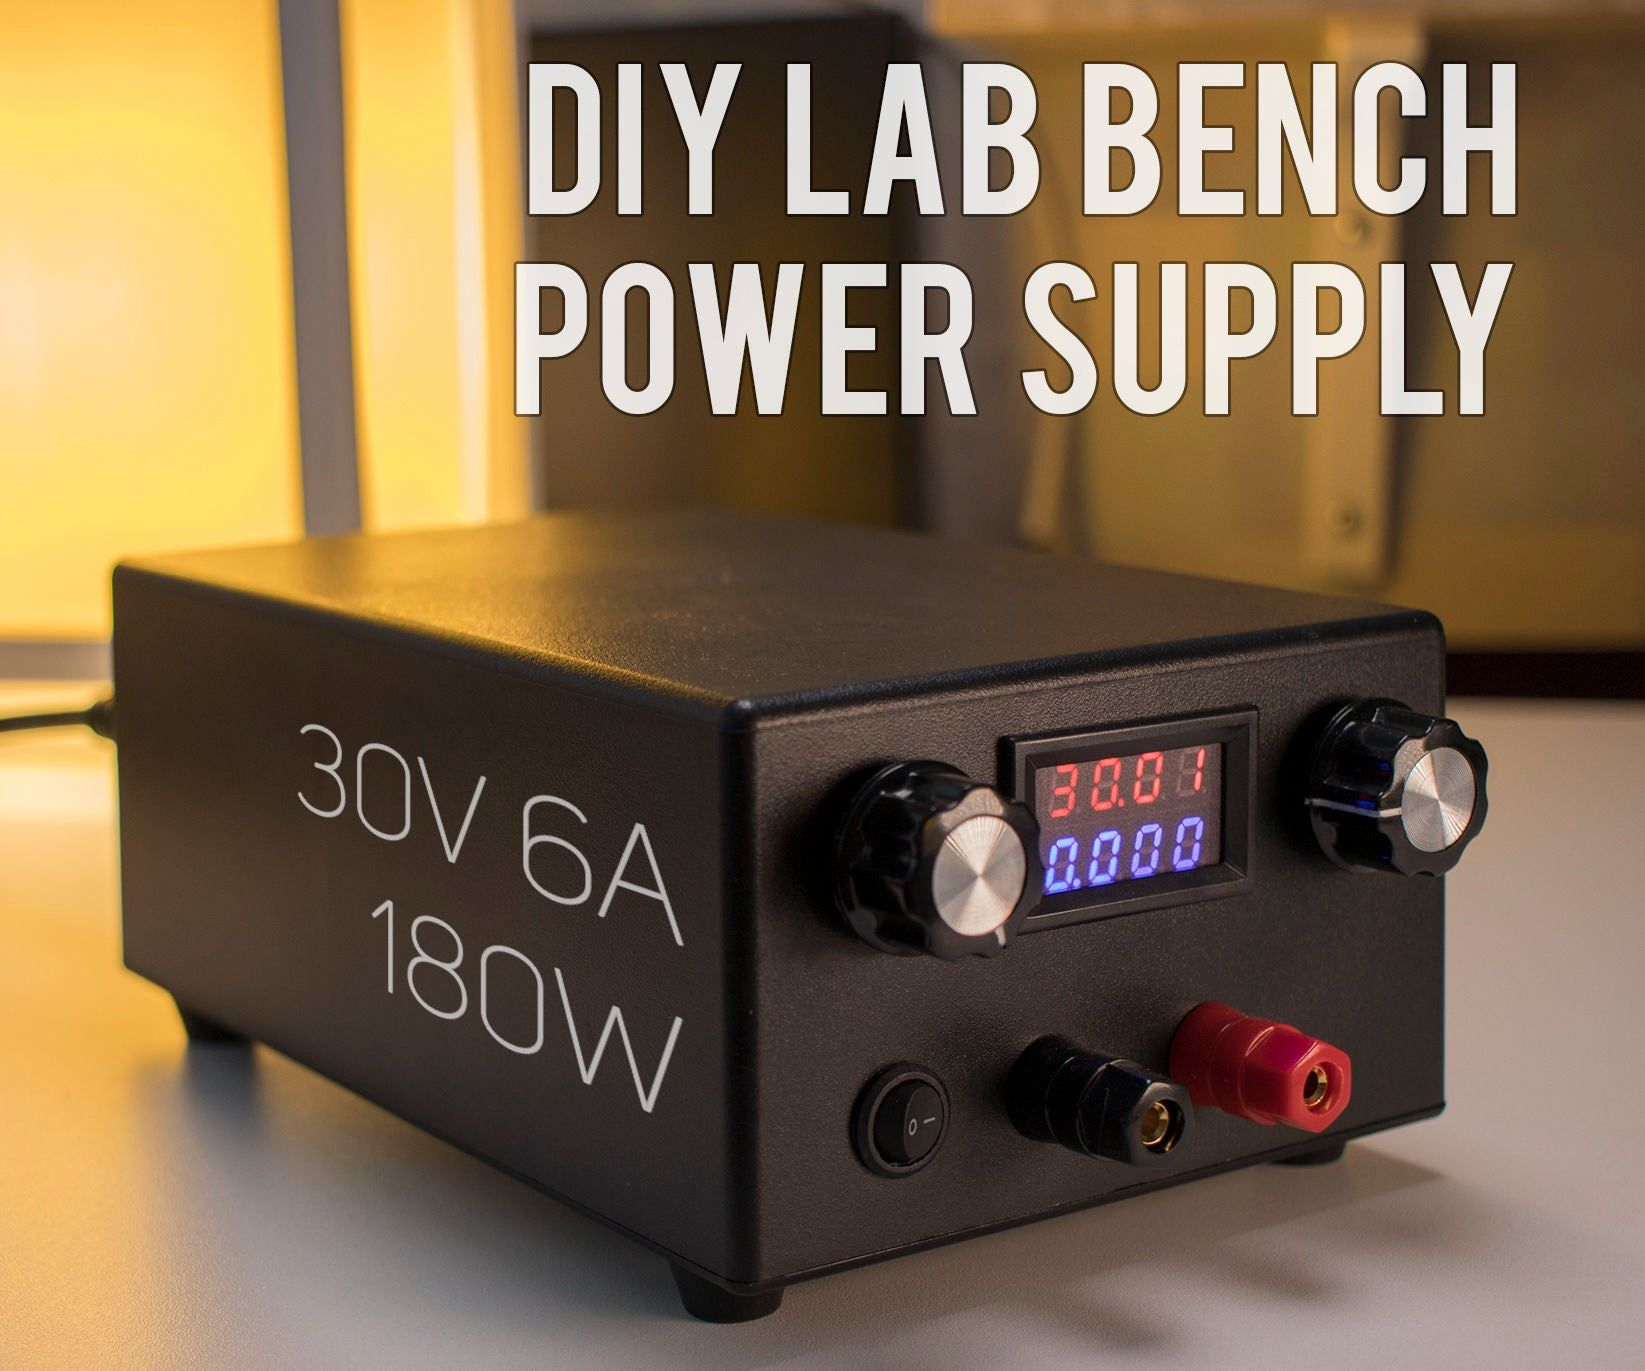 DIY Lab Bench Power Supply [Build + Tests] Power supply